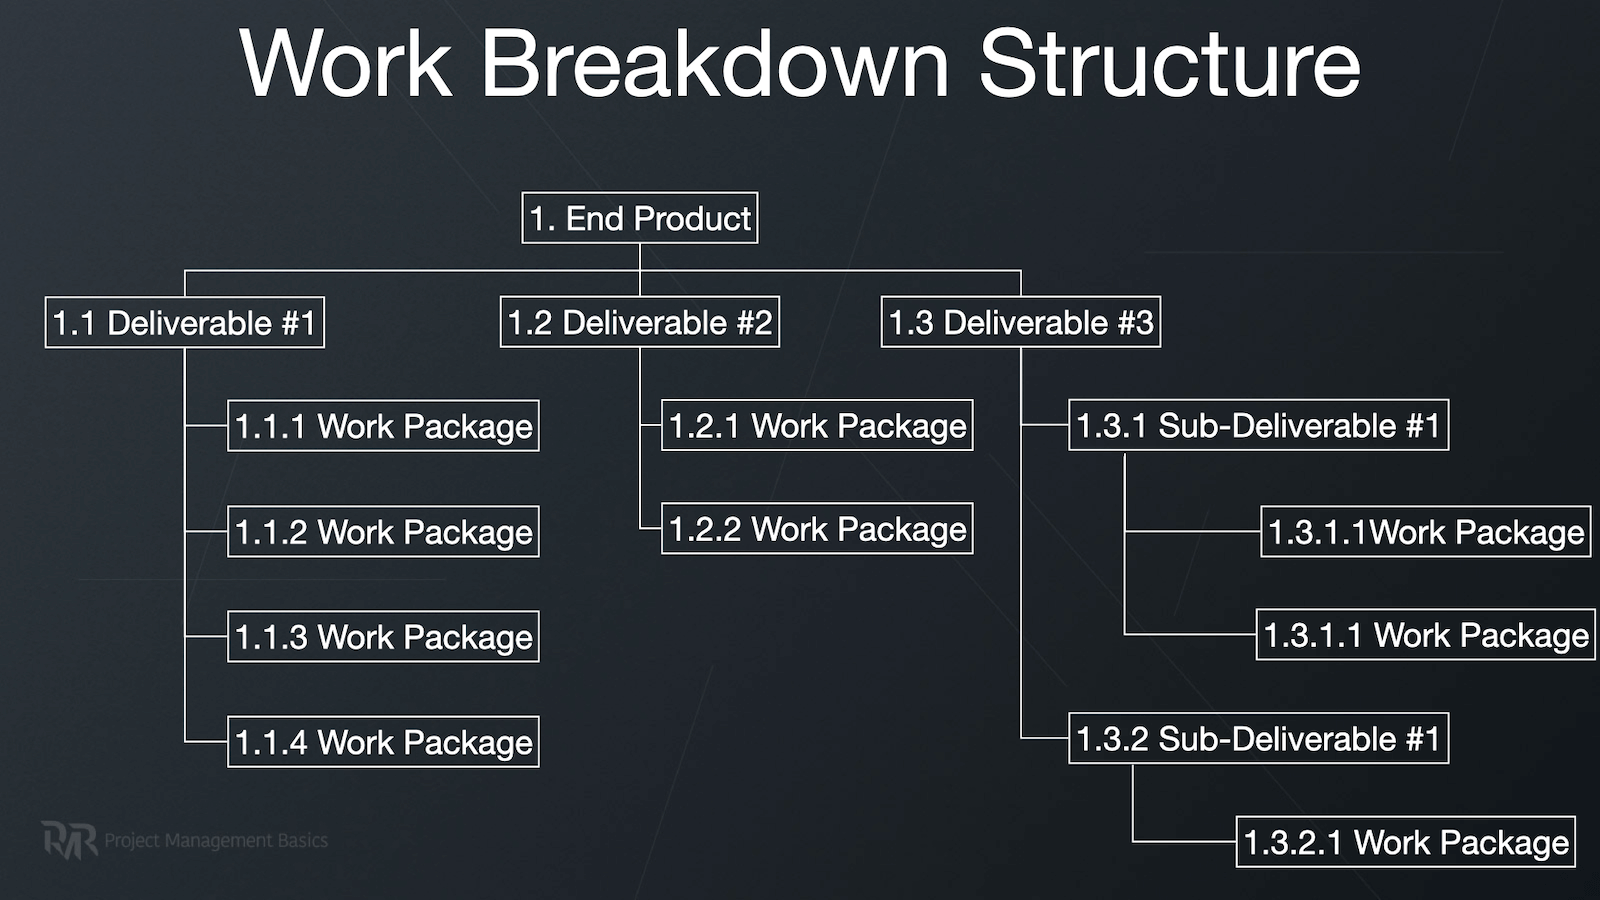 A diagram representation of a Work Breakdown Structure helps to visualize project scope.